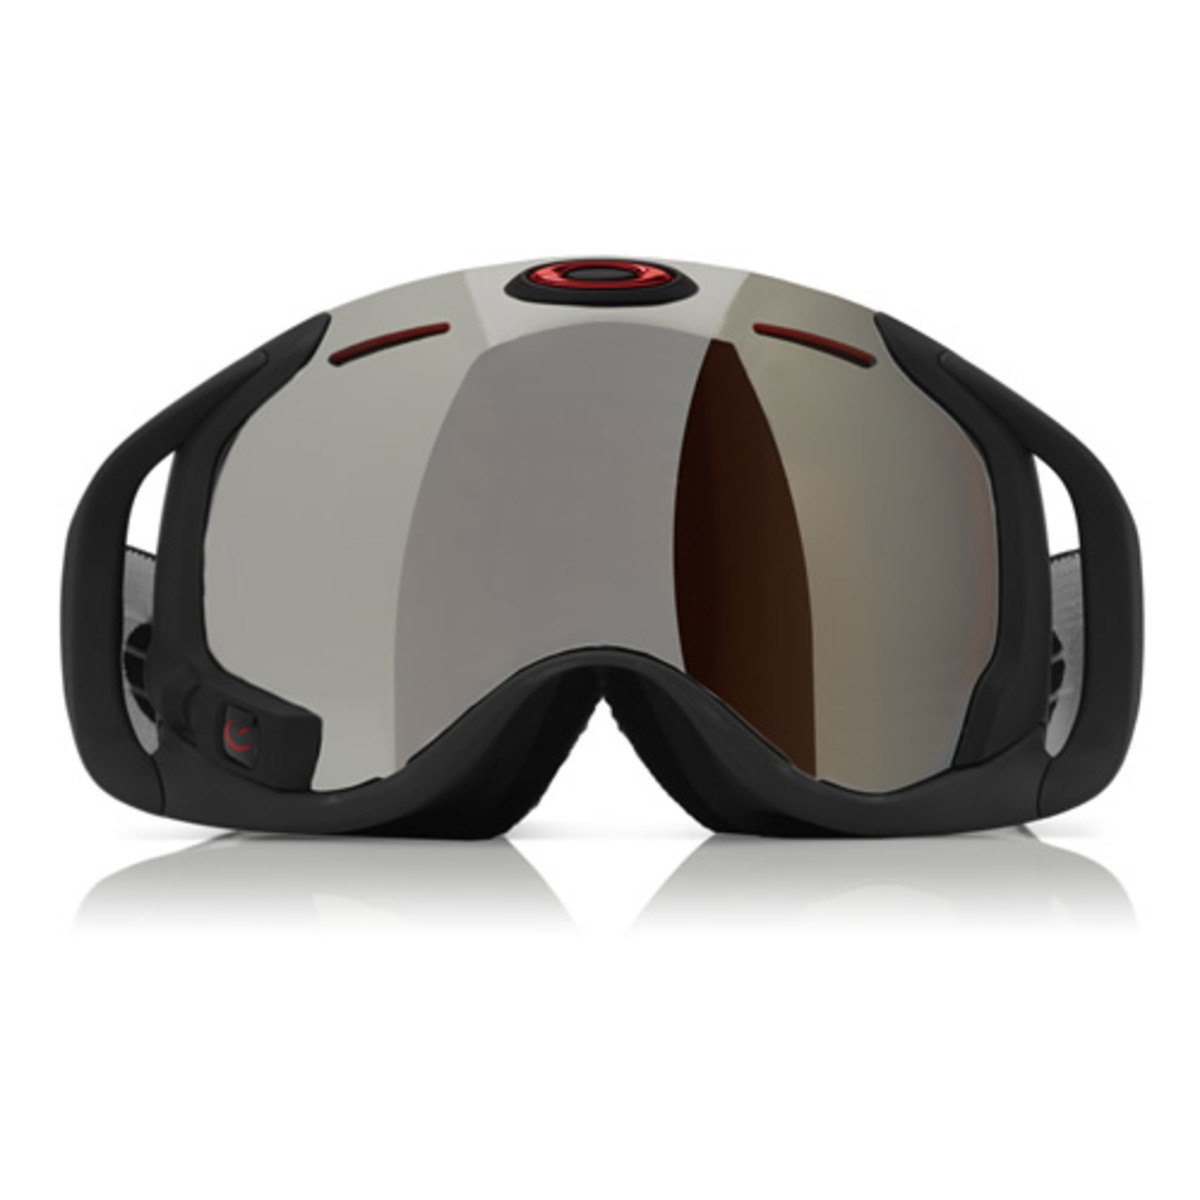 dda832f79c9b5 While its not quite Master Chief s heads up display, Oakley s Airwave  Goggle is a nice first step. The goggle uses Recon Instrument s latest HUD  technology ...